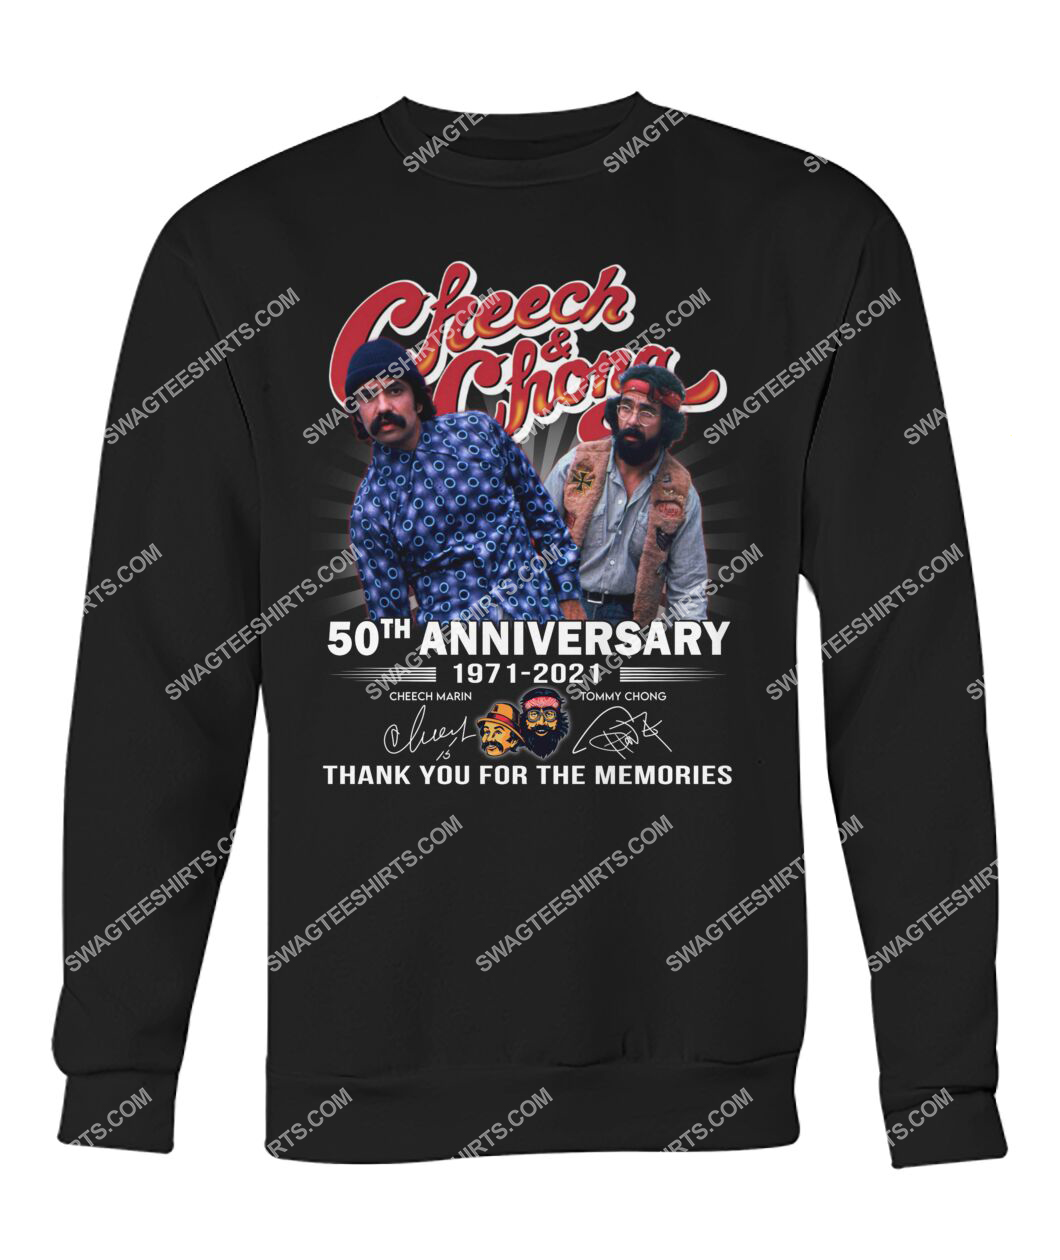 cheech and chong 50th anniversary signatures thank you for memories sweatshirt 1